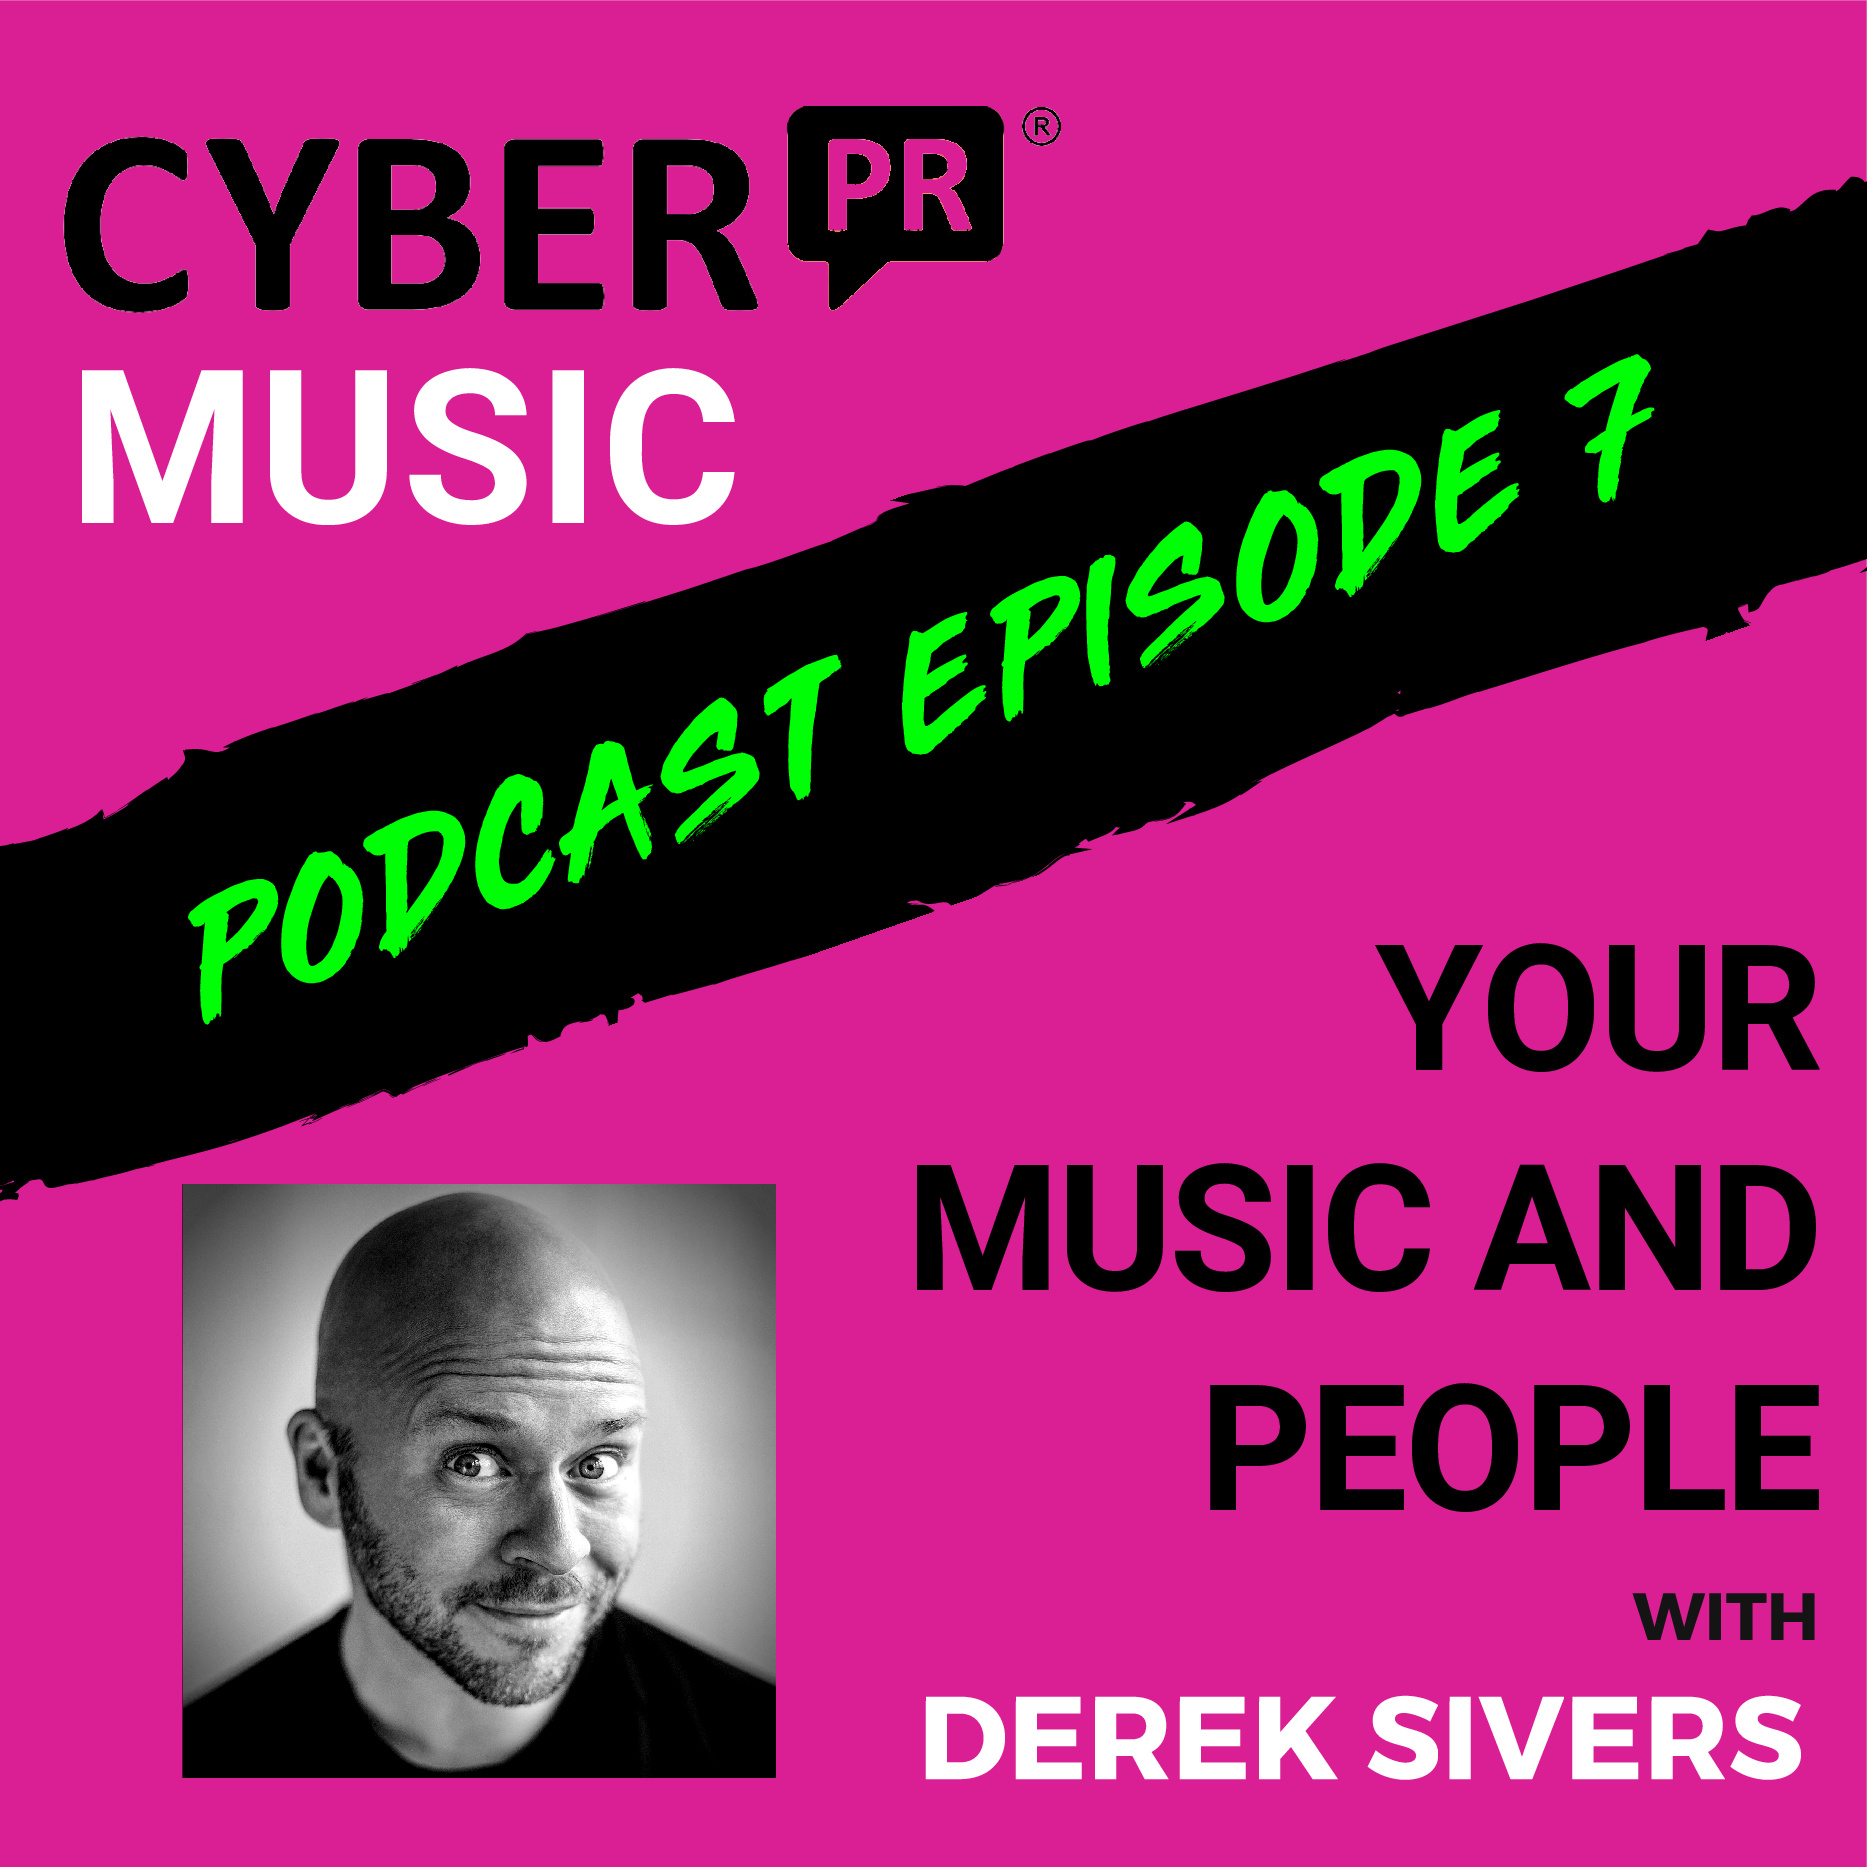 Cyber PR - Music Industry, Musician Marketing, Workshops, PR Agency